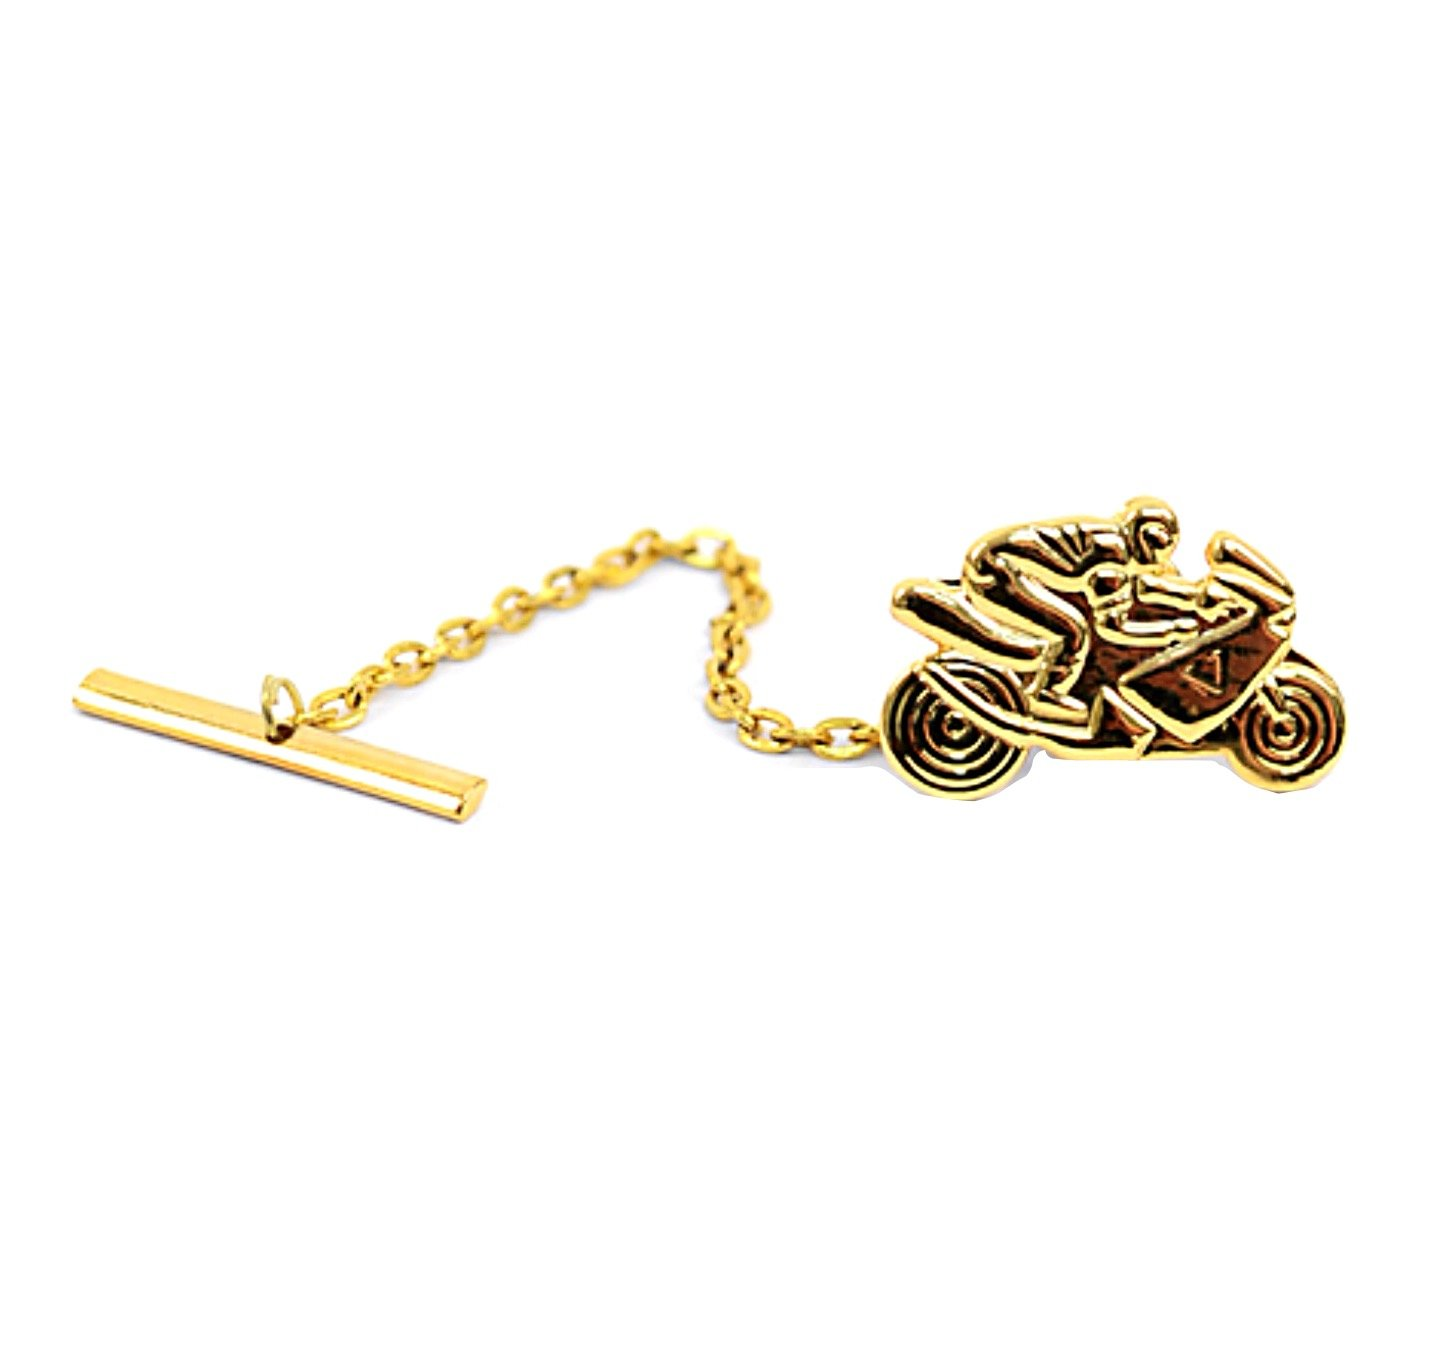 Umo Lorenzo Mens Motorcycle Novelty Tie Tack Pin for Bikers (Gold)